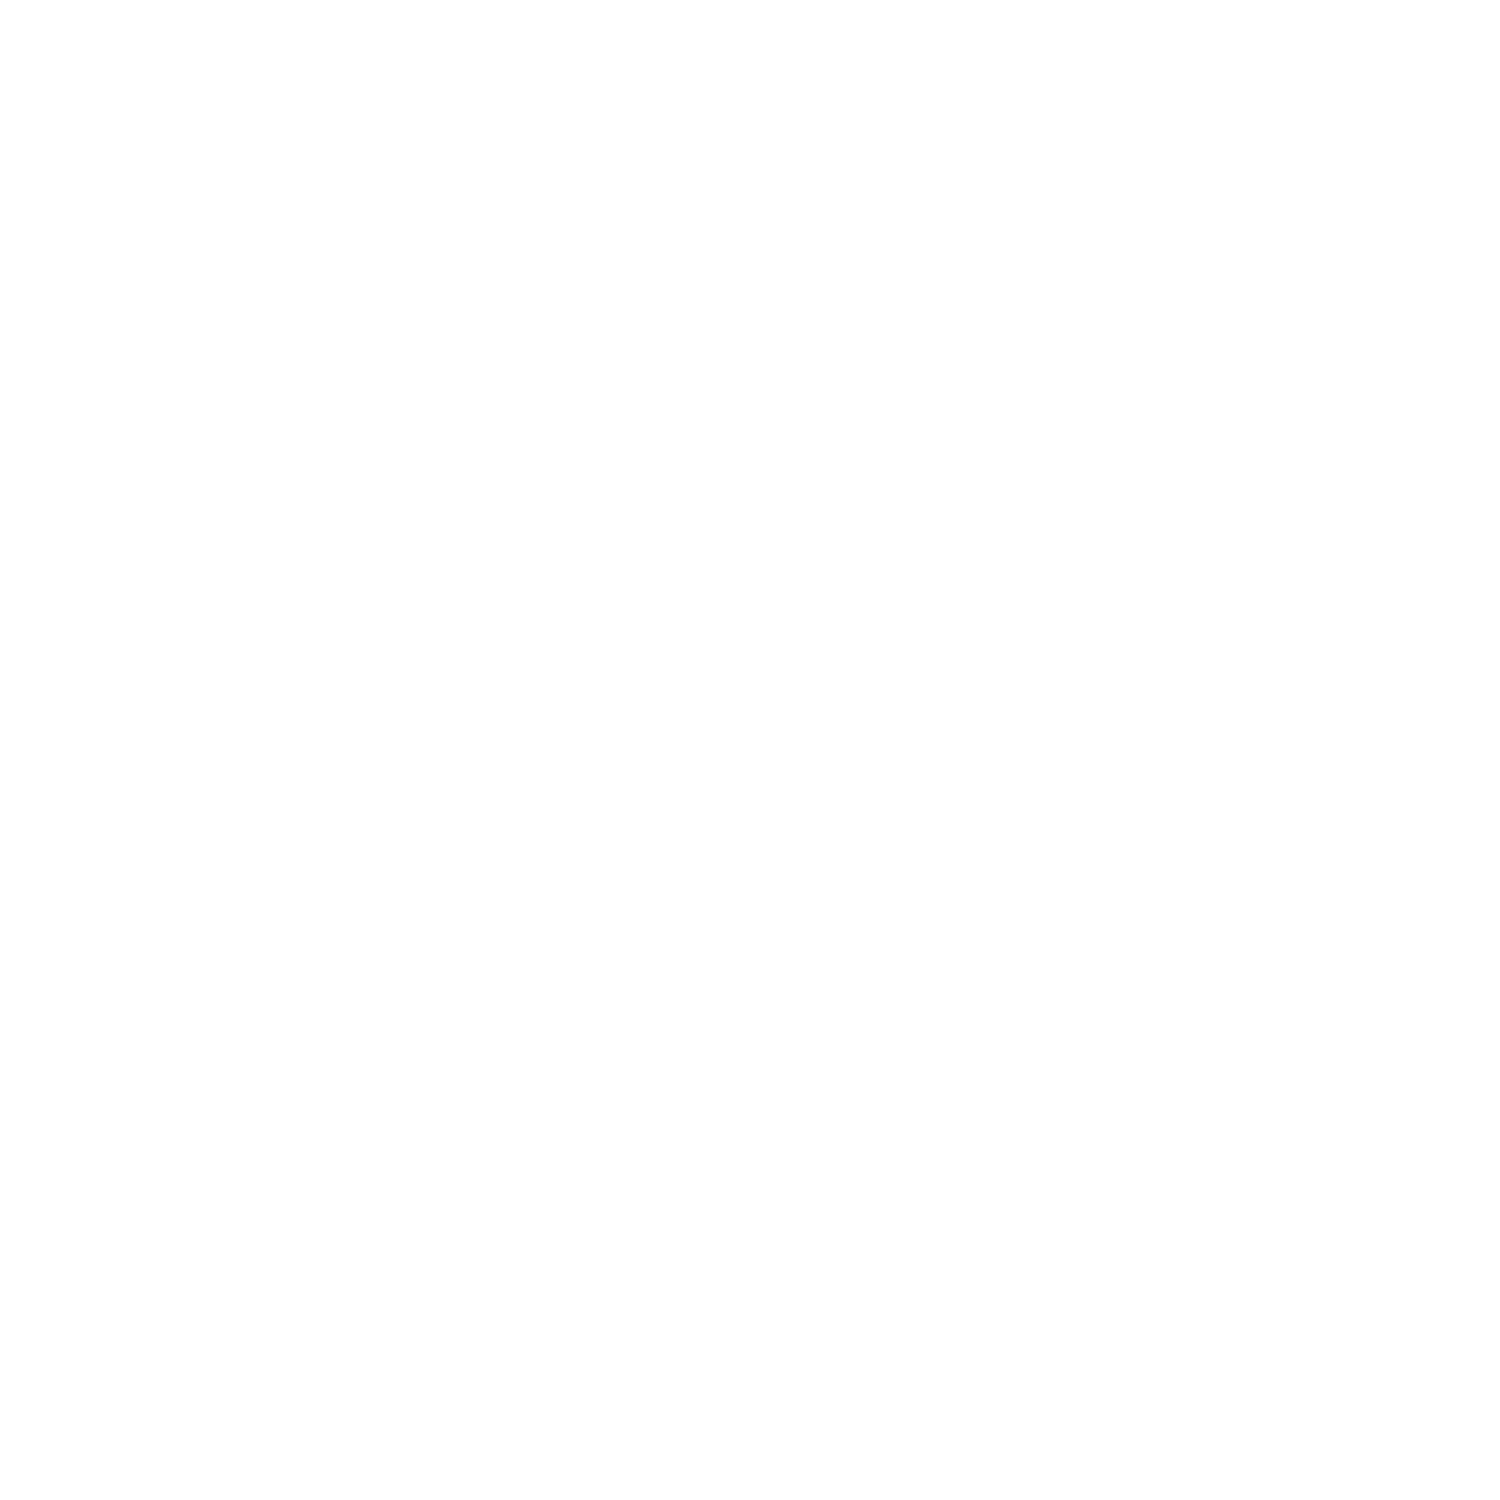 Profile Pools